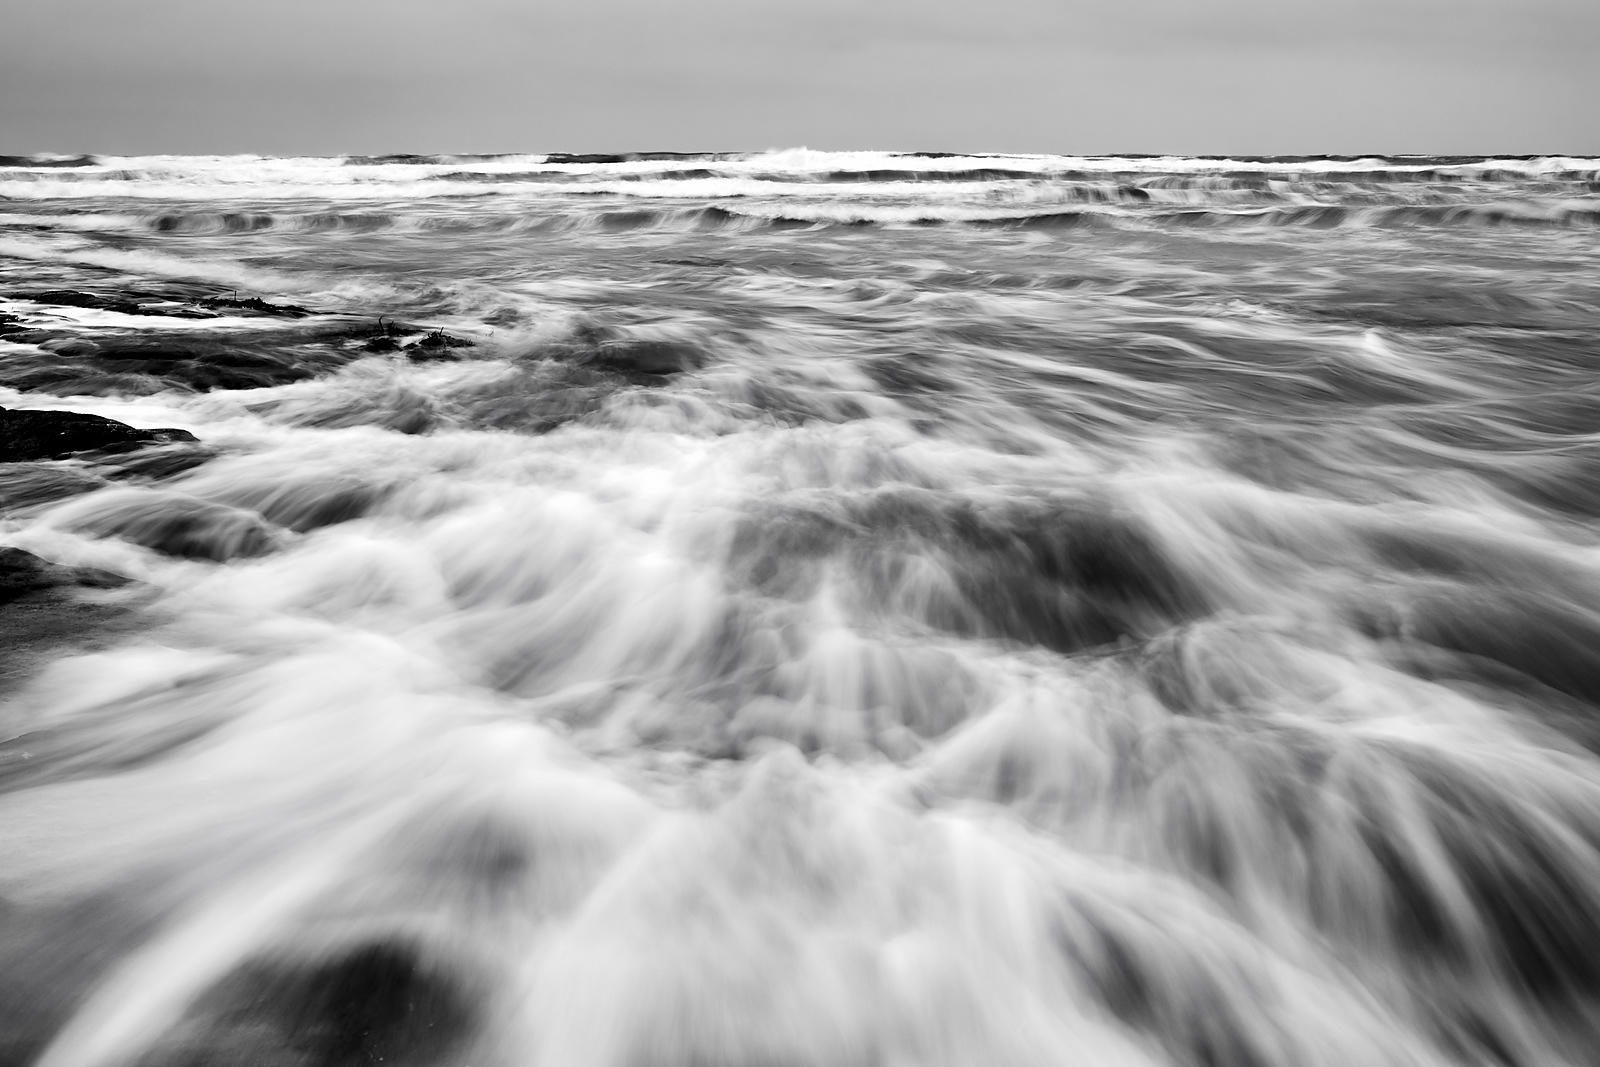 Soft waves (B&W)